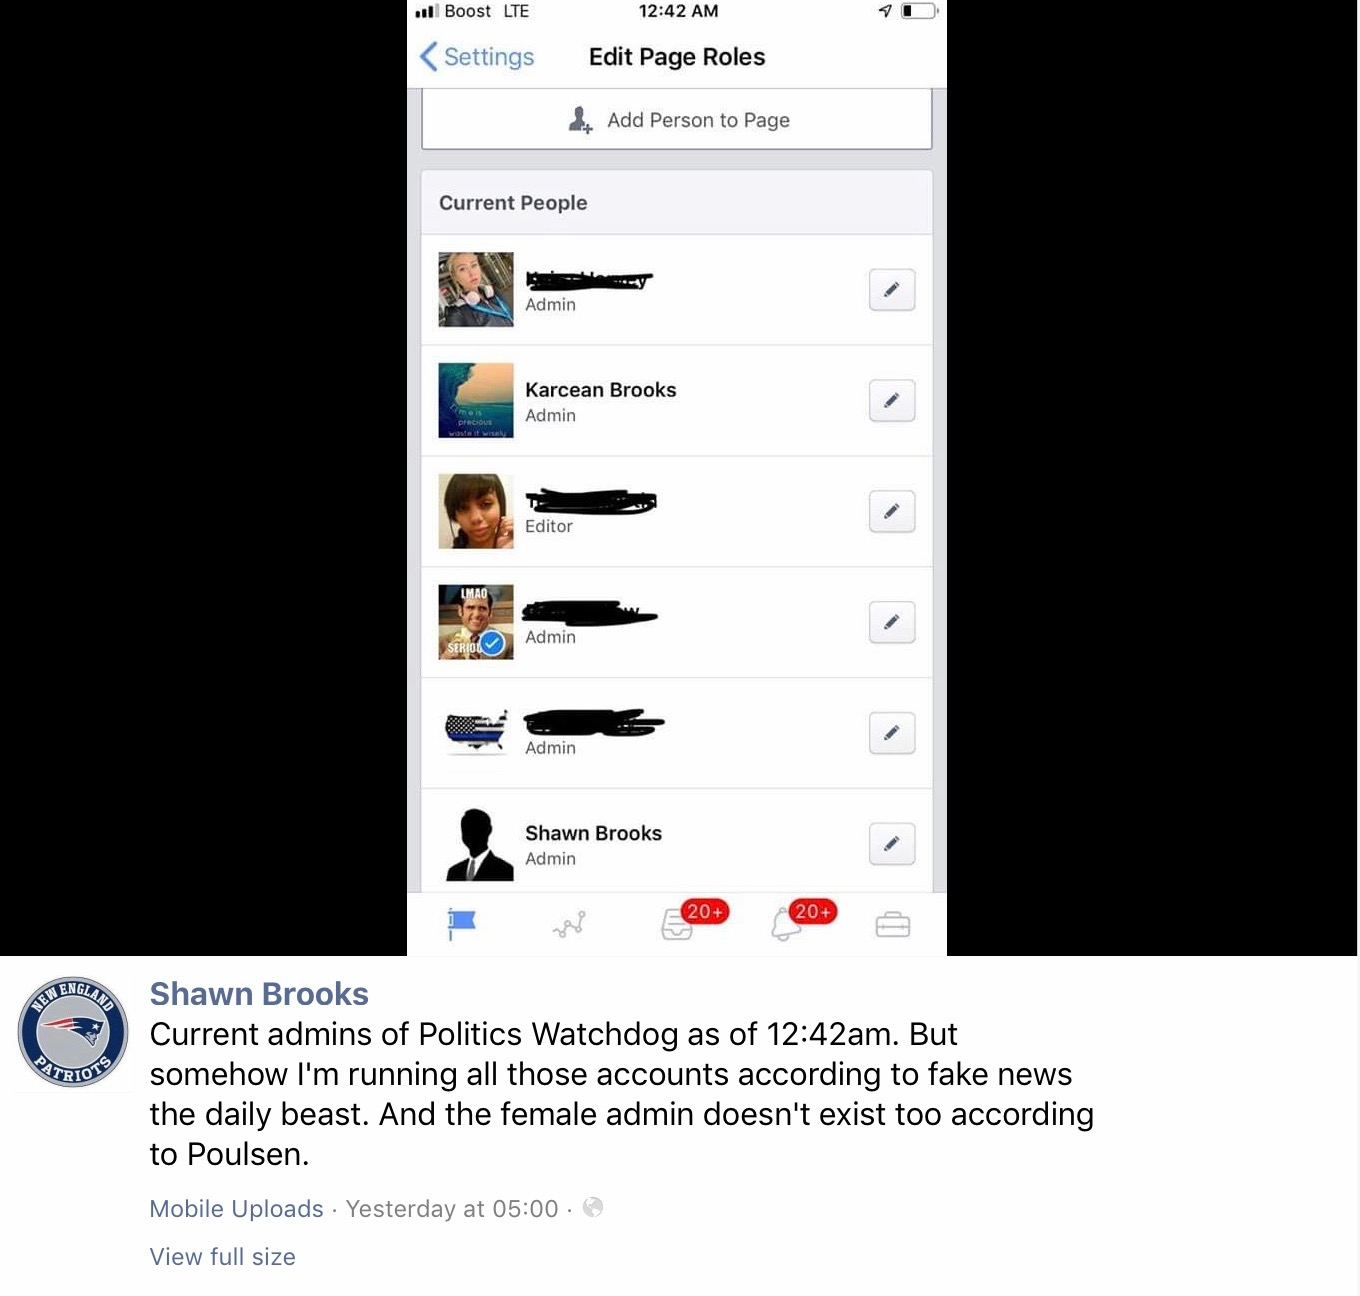 A screenshot from Shawn Brooks of what he claims to be the current admins of the Politics Watchdog page.